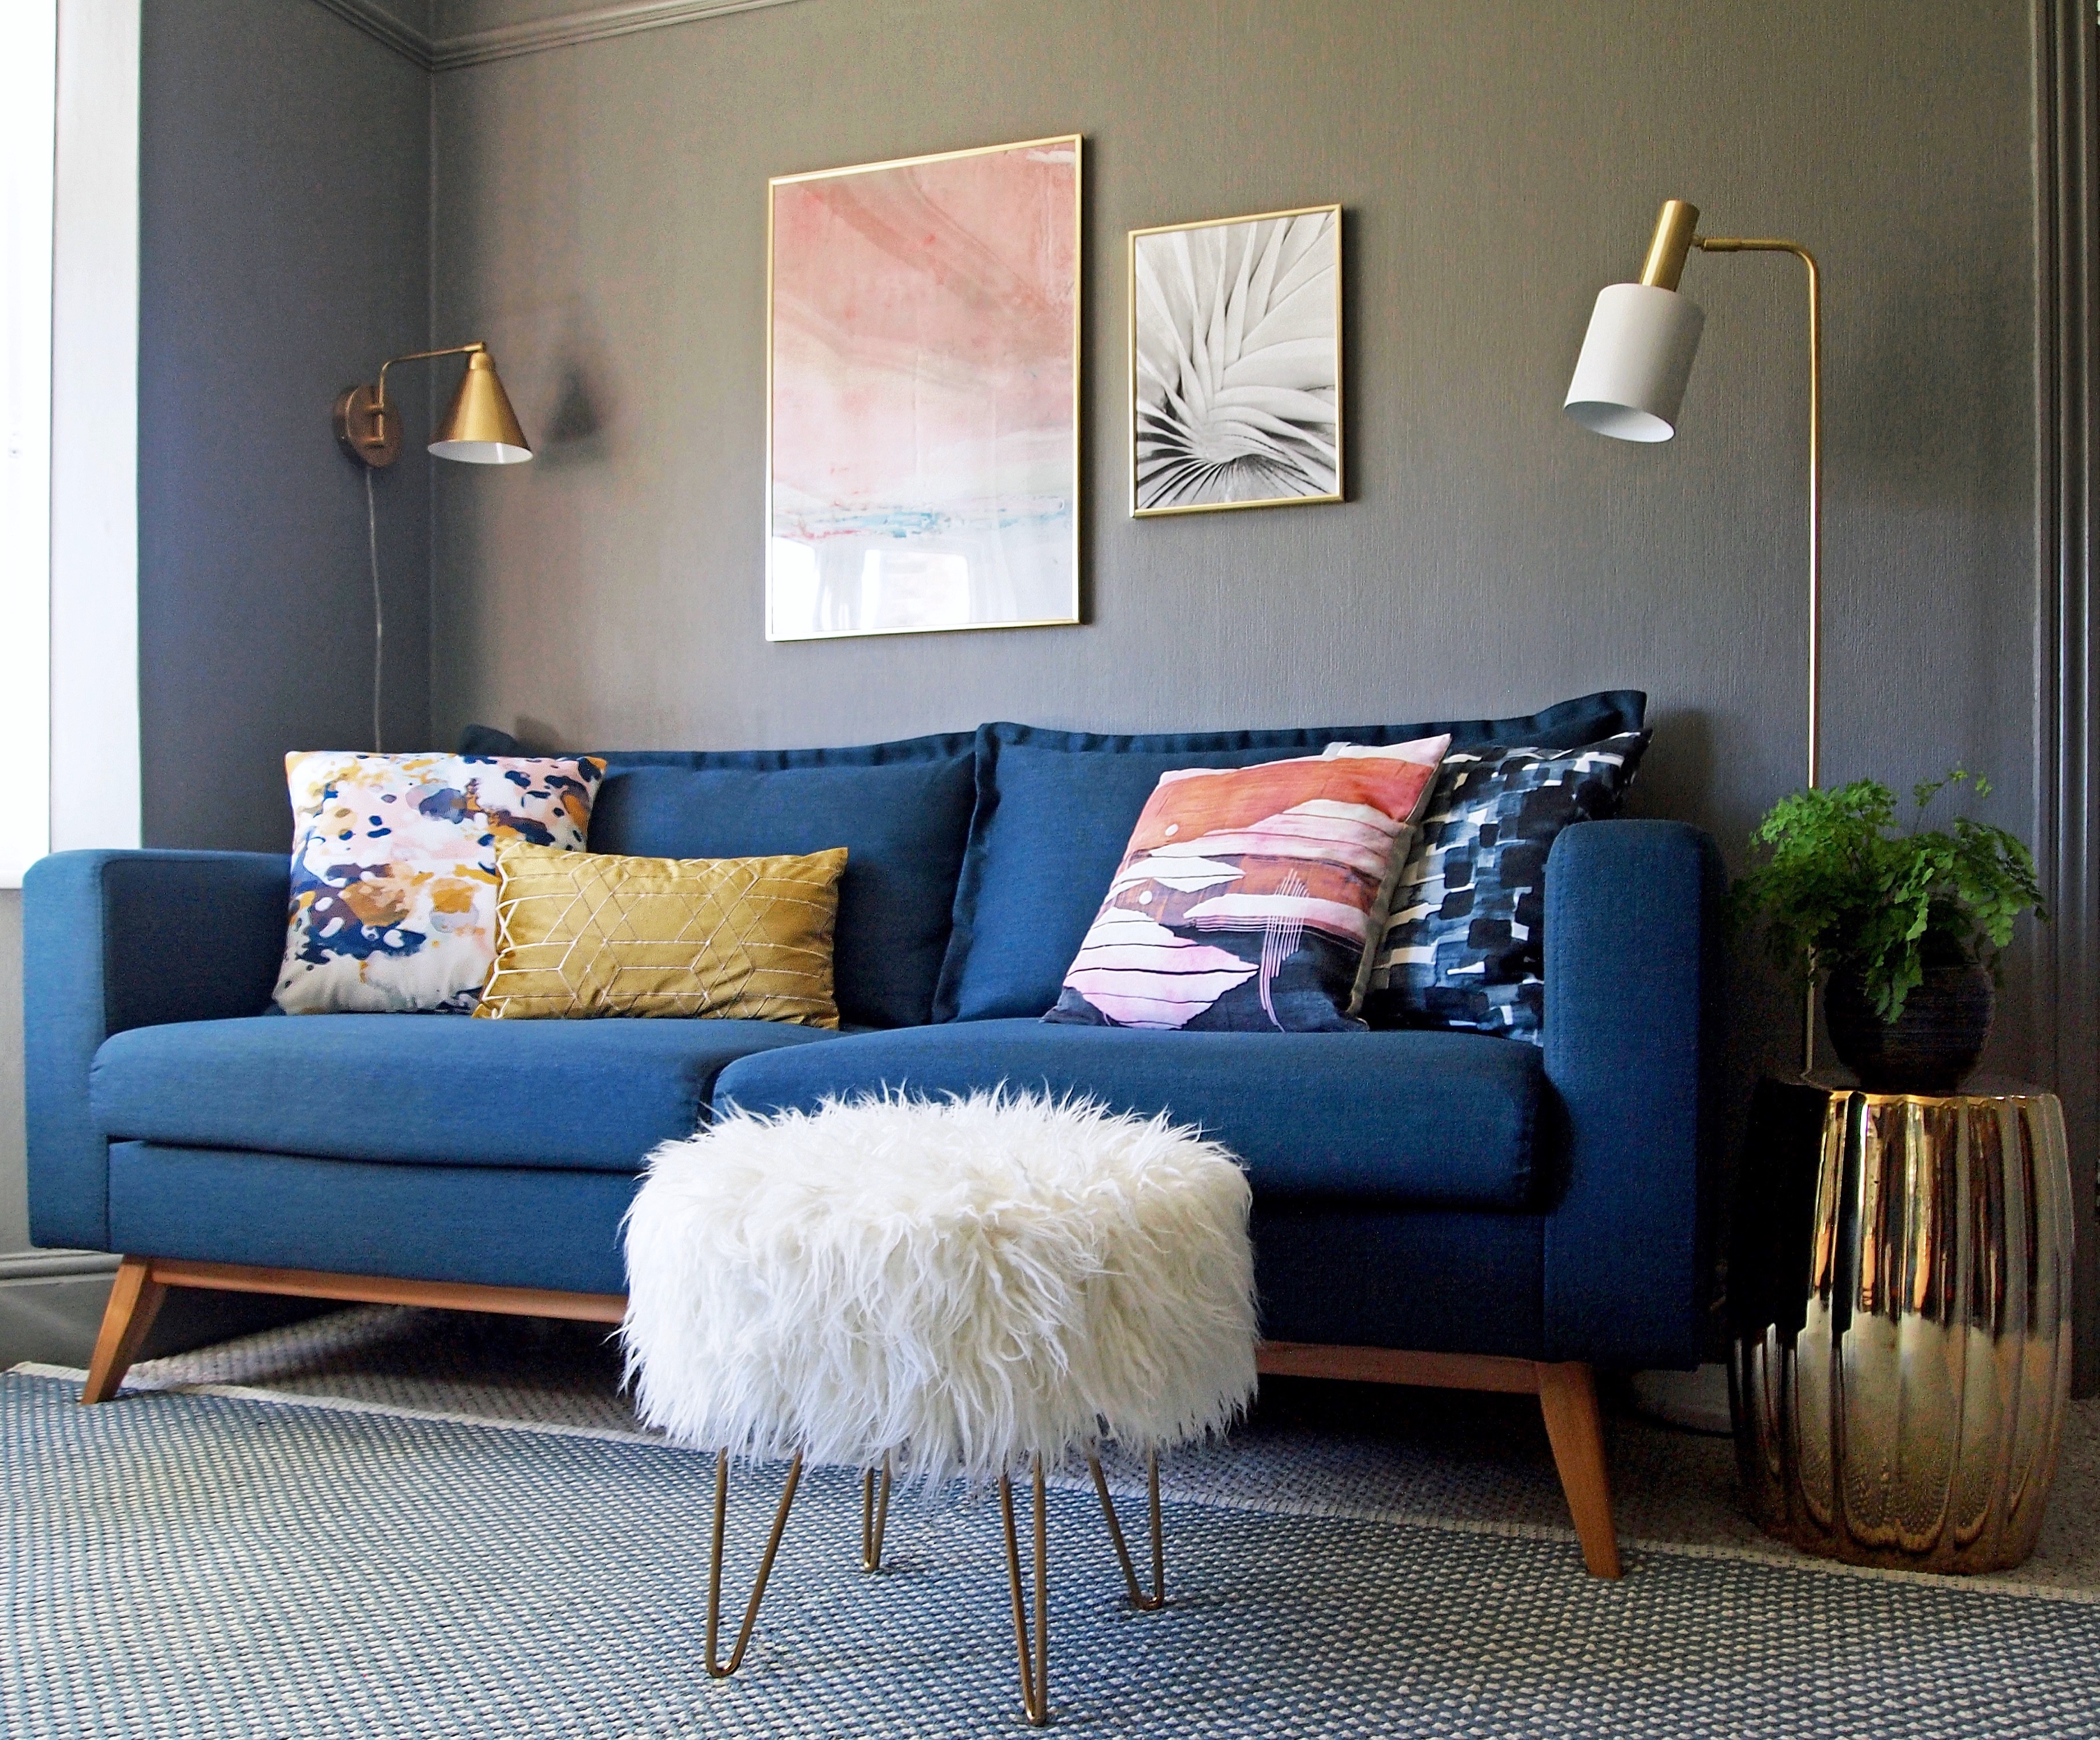 Maison Du Monde Schlafsofa Revamp Restyle Reveal My Living Room Reveal First Sense Interiors